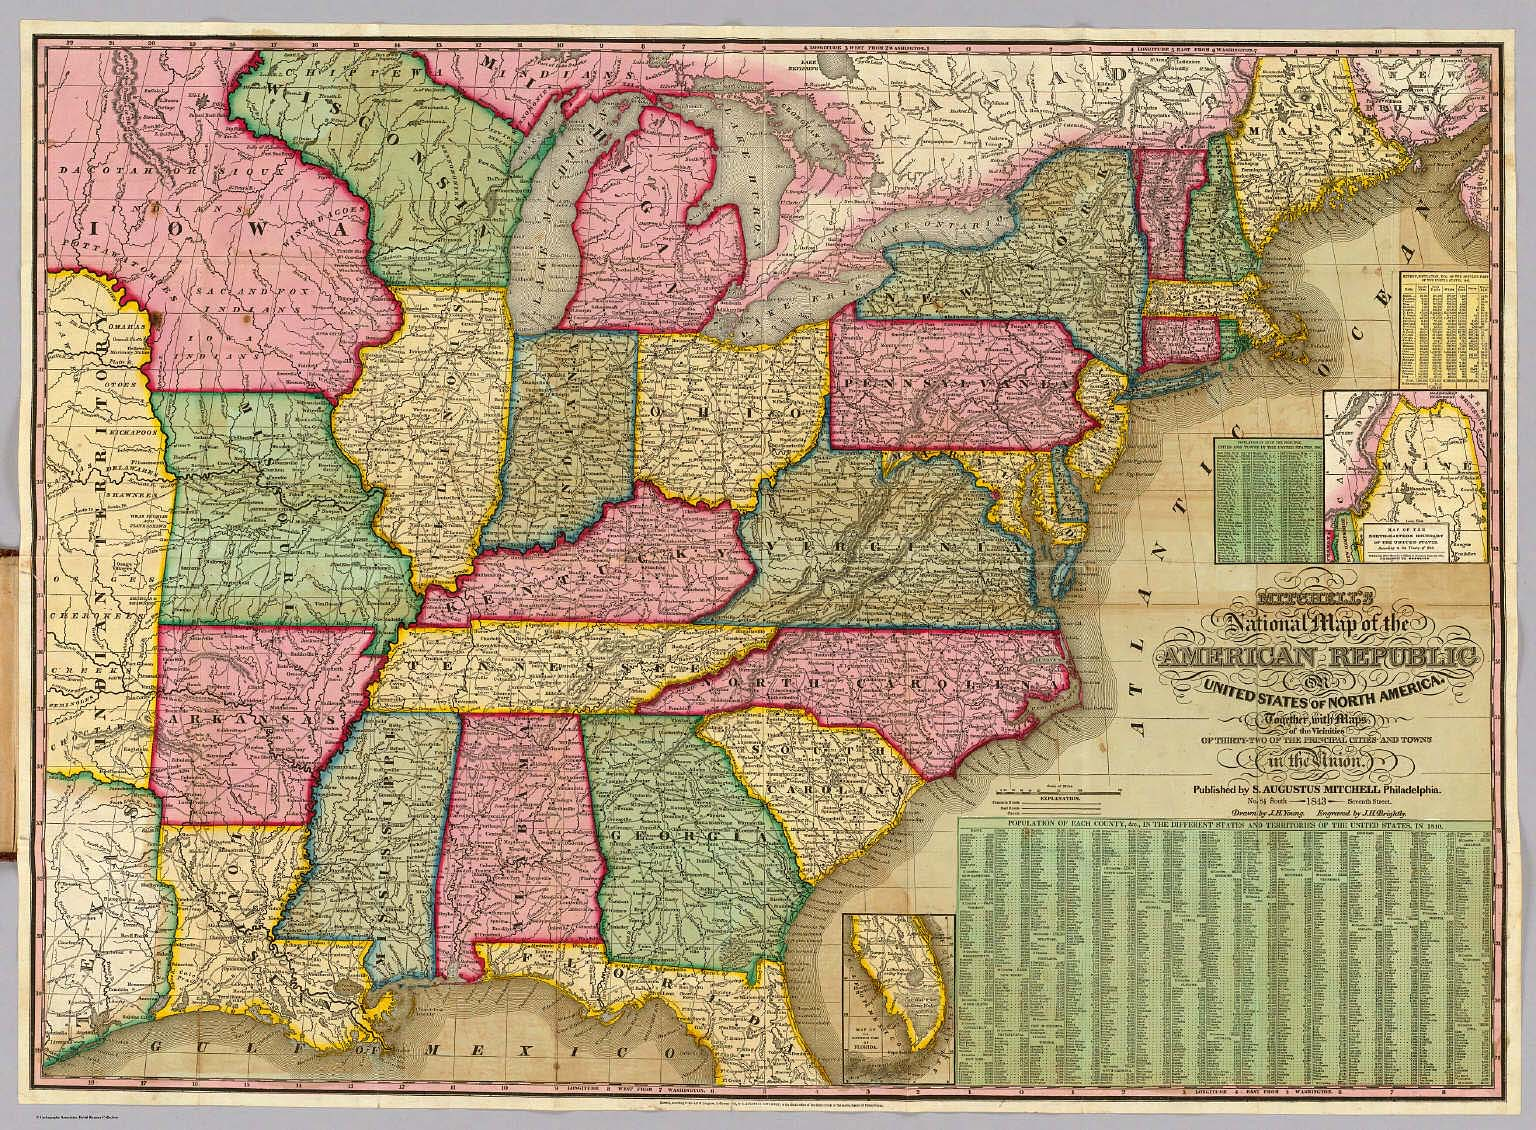 Mitchells National Map of the American Republic David Rumsey